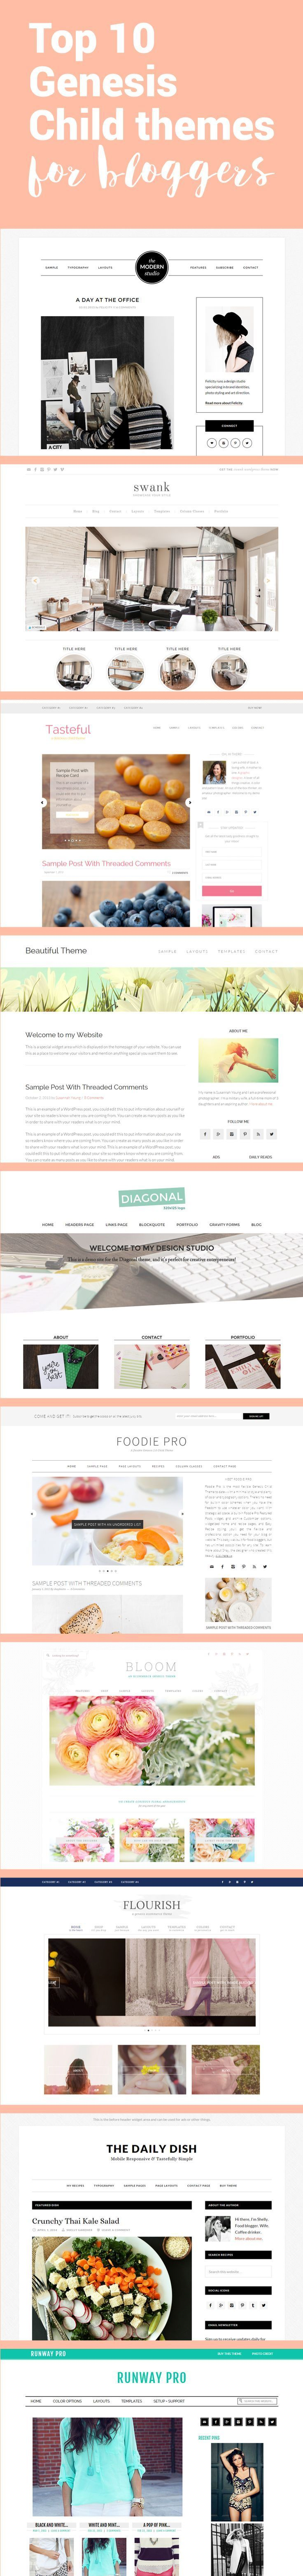 Looking for a new WordPress theme? Check out these 10 Genesis child themes. Beautiful themes for bloggers!